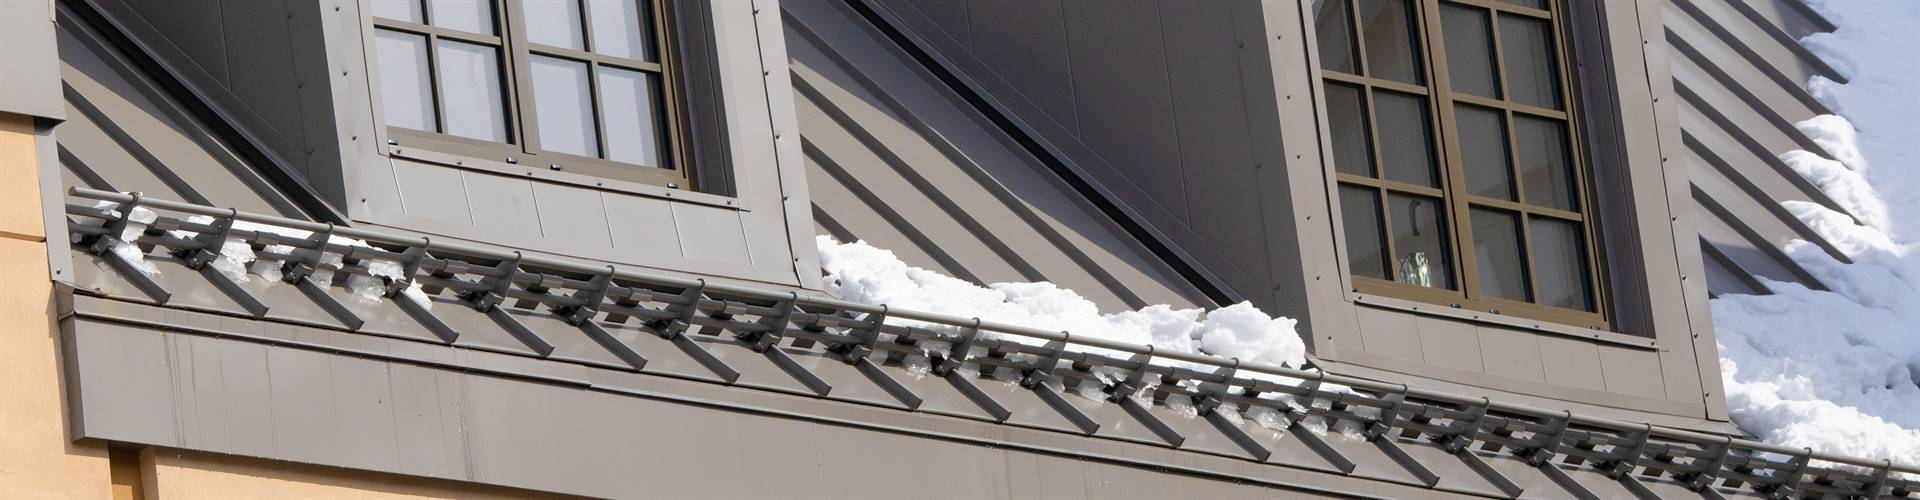 Precision Engineered, non-penetrative metal roof snow guards